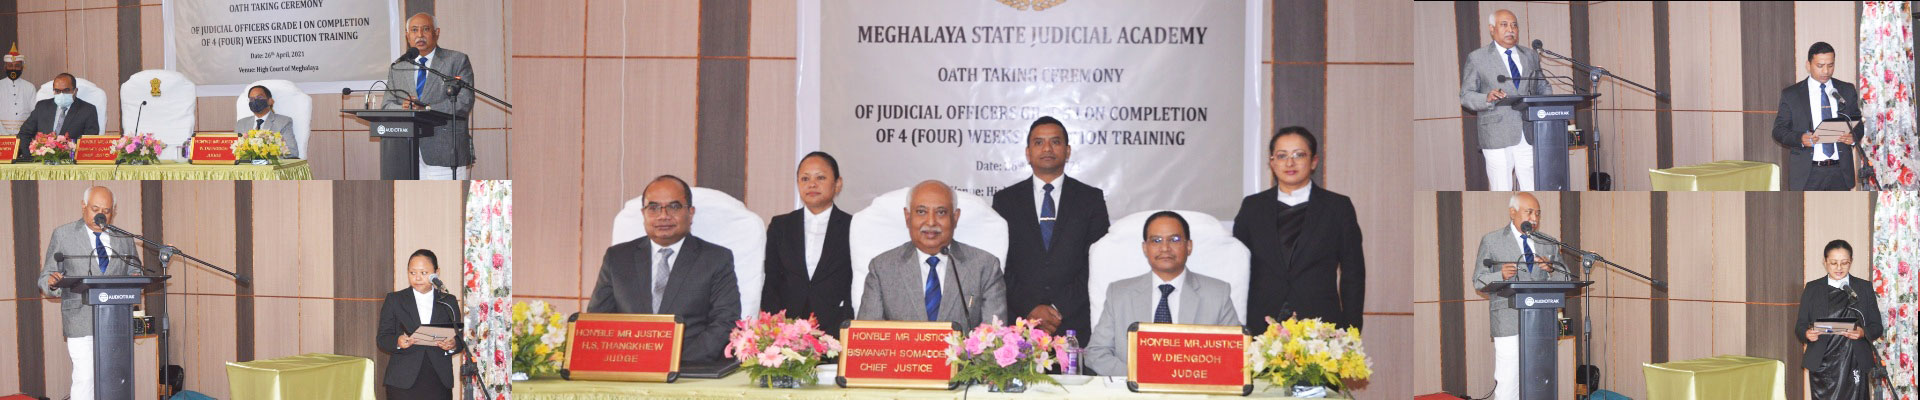 Oath Taking Ceremony held